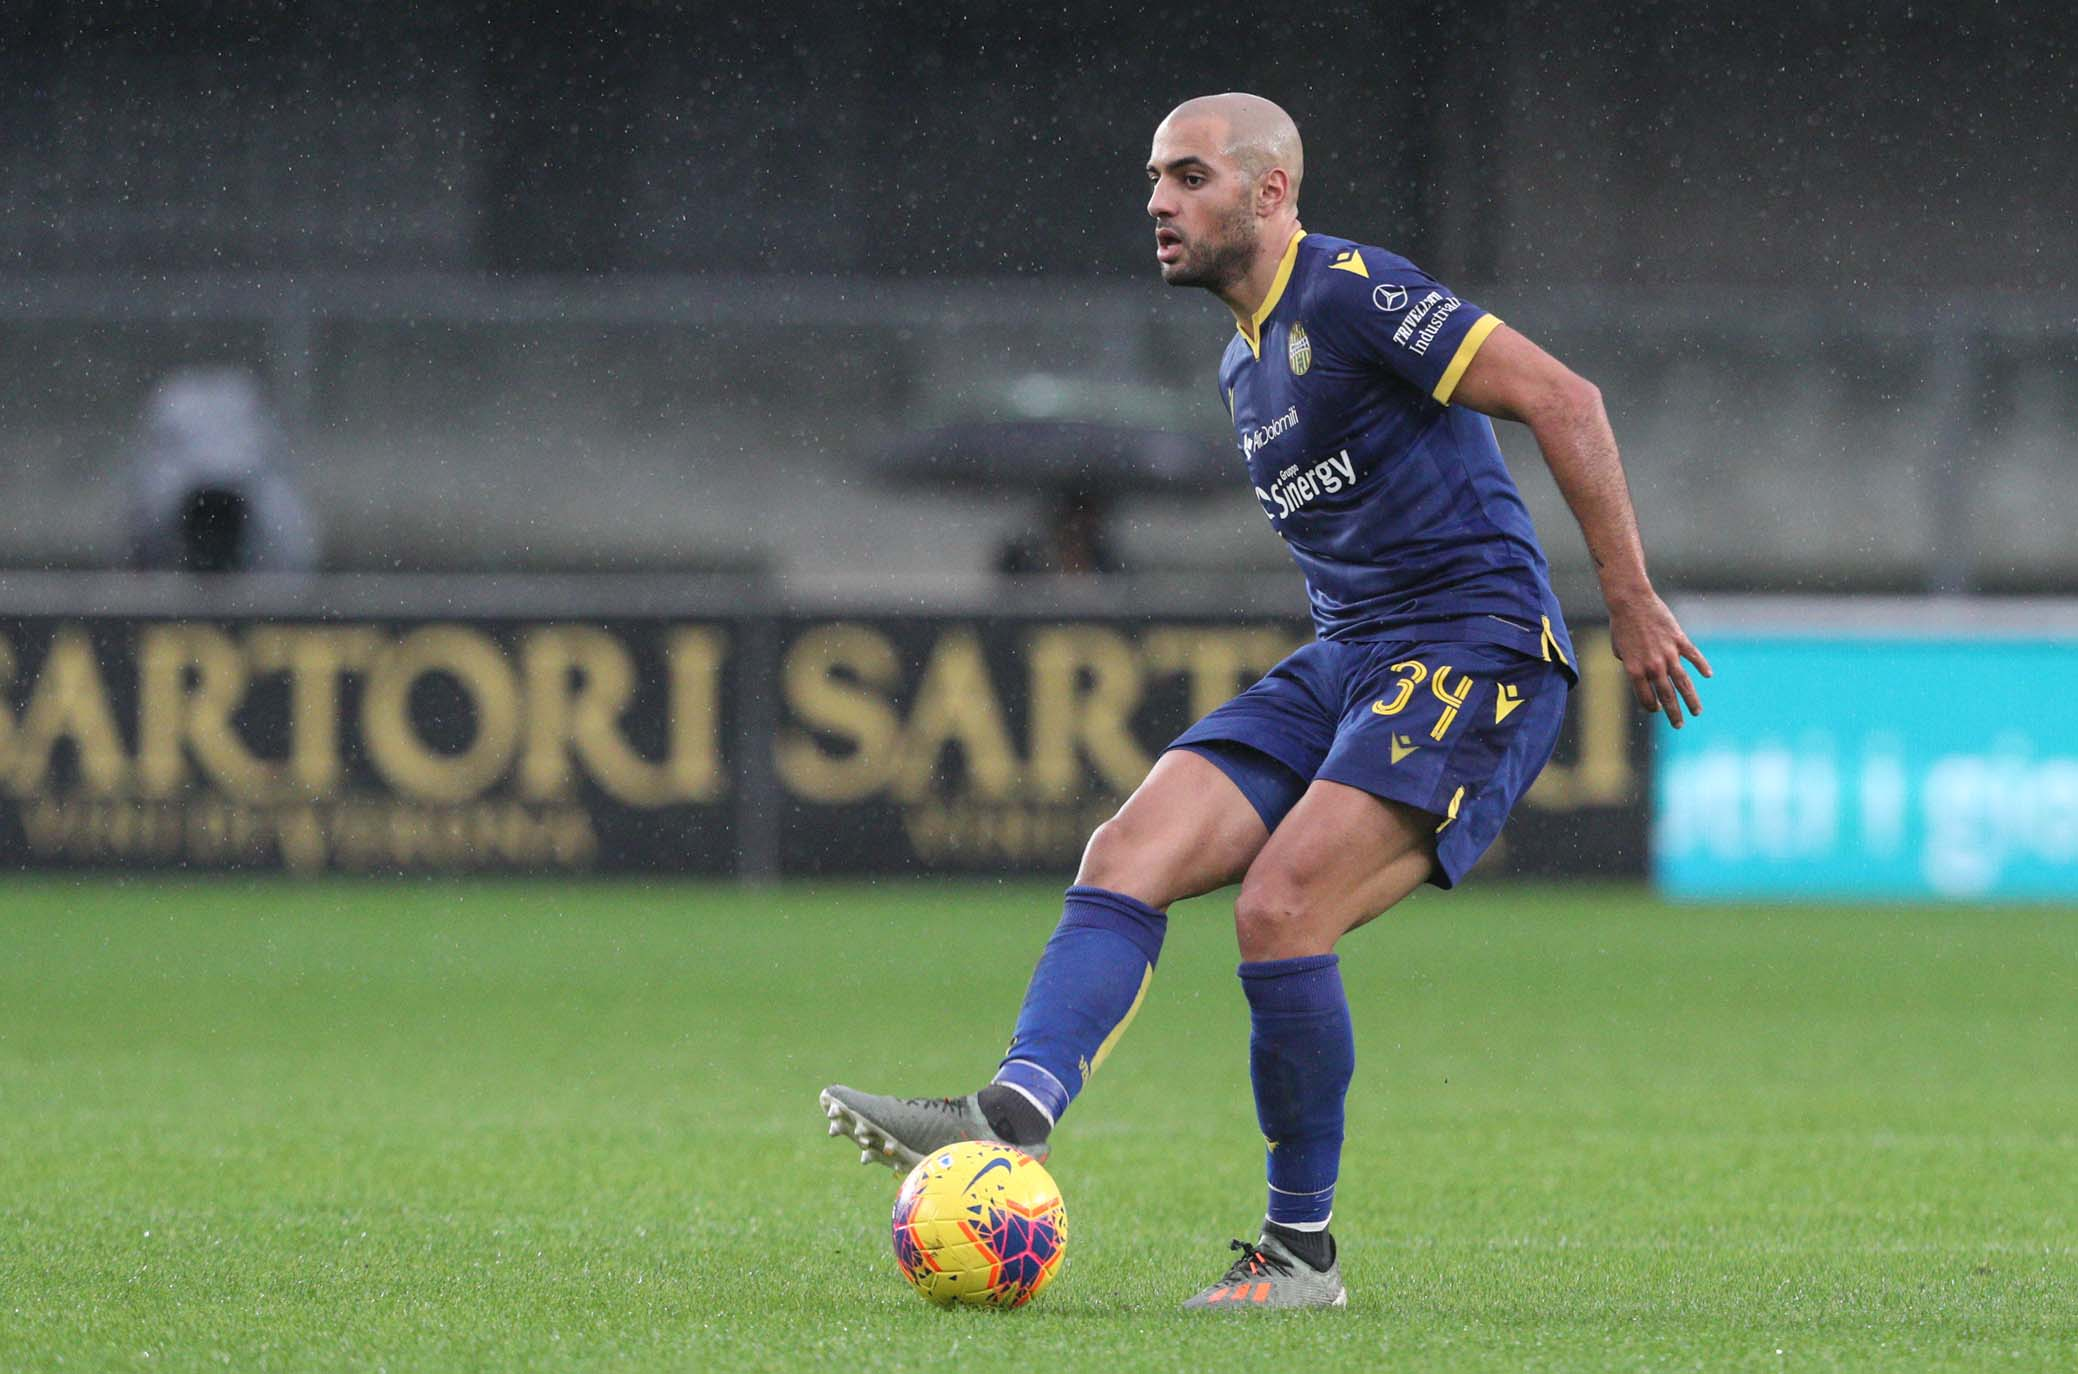 bordeaux-following-sofyan-amrabat-verona